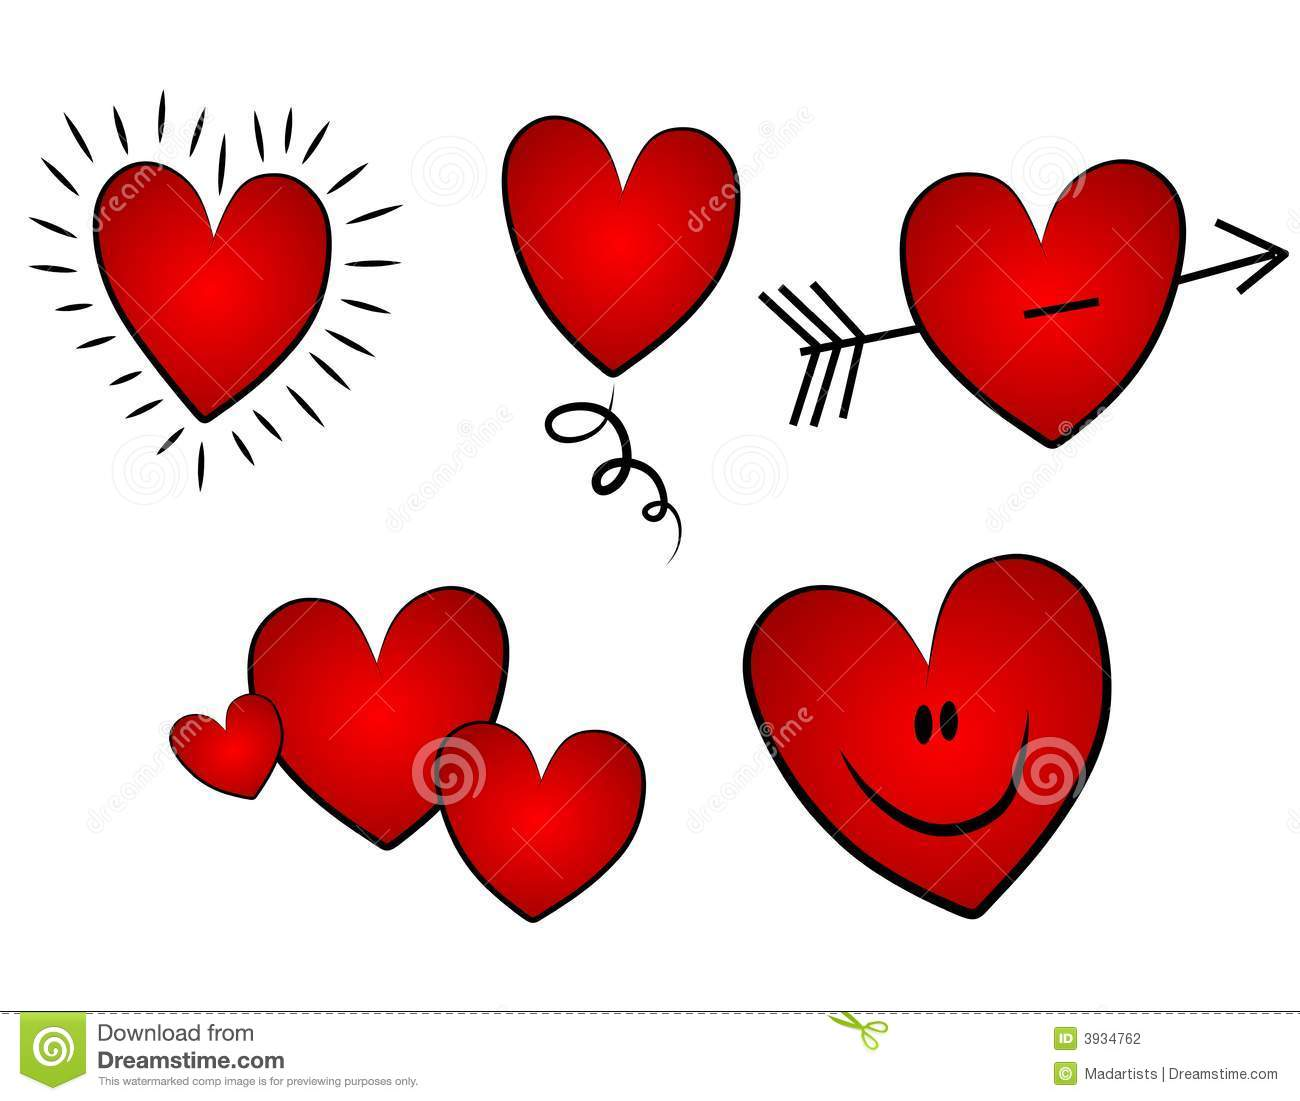 Hearts valentines day clipart clip royalty free stock Various Valentine's Day Clip Art Hearts Stock Photography - Image ... clip royalty free stock